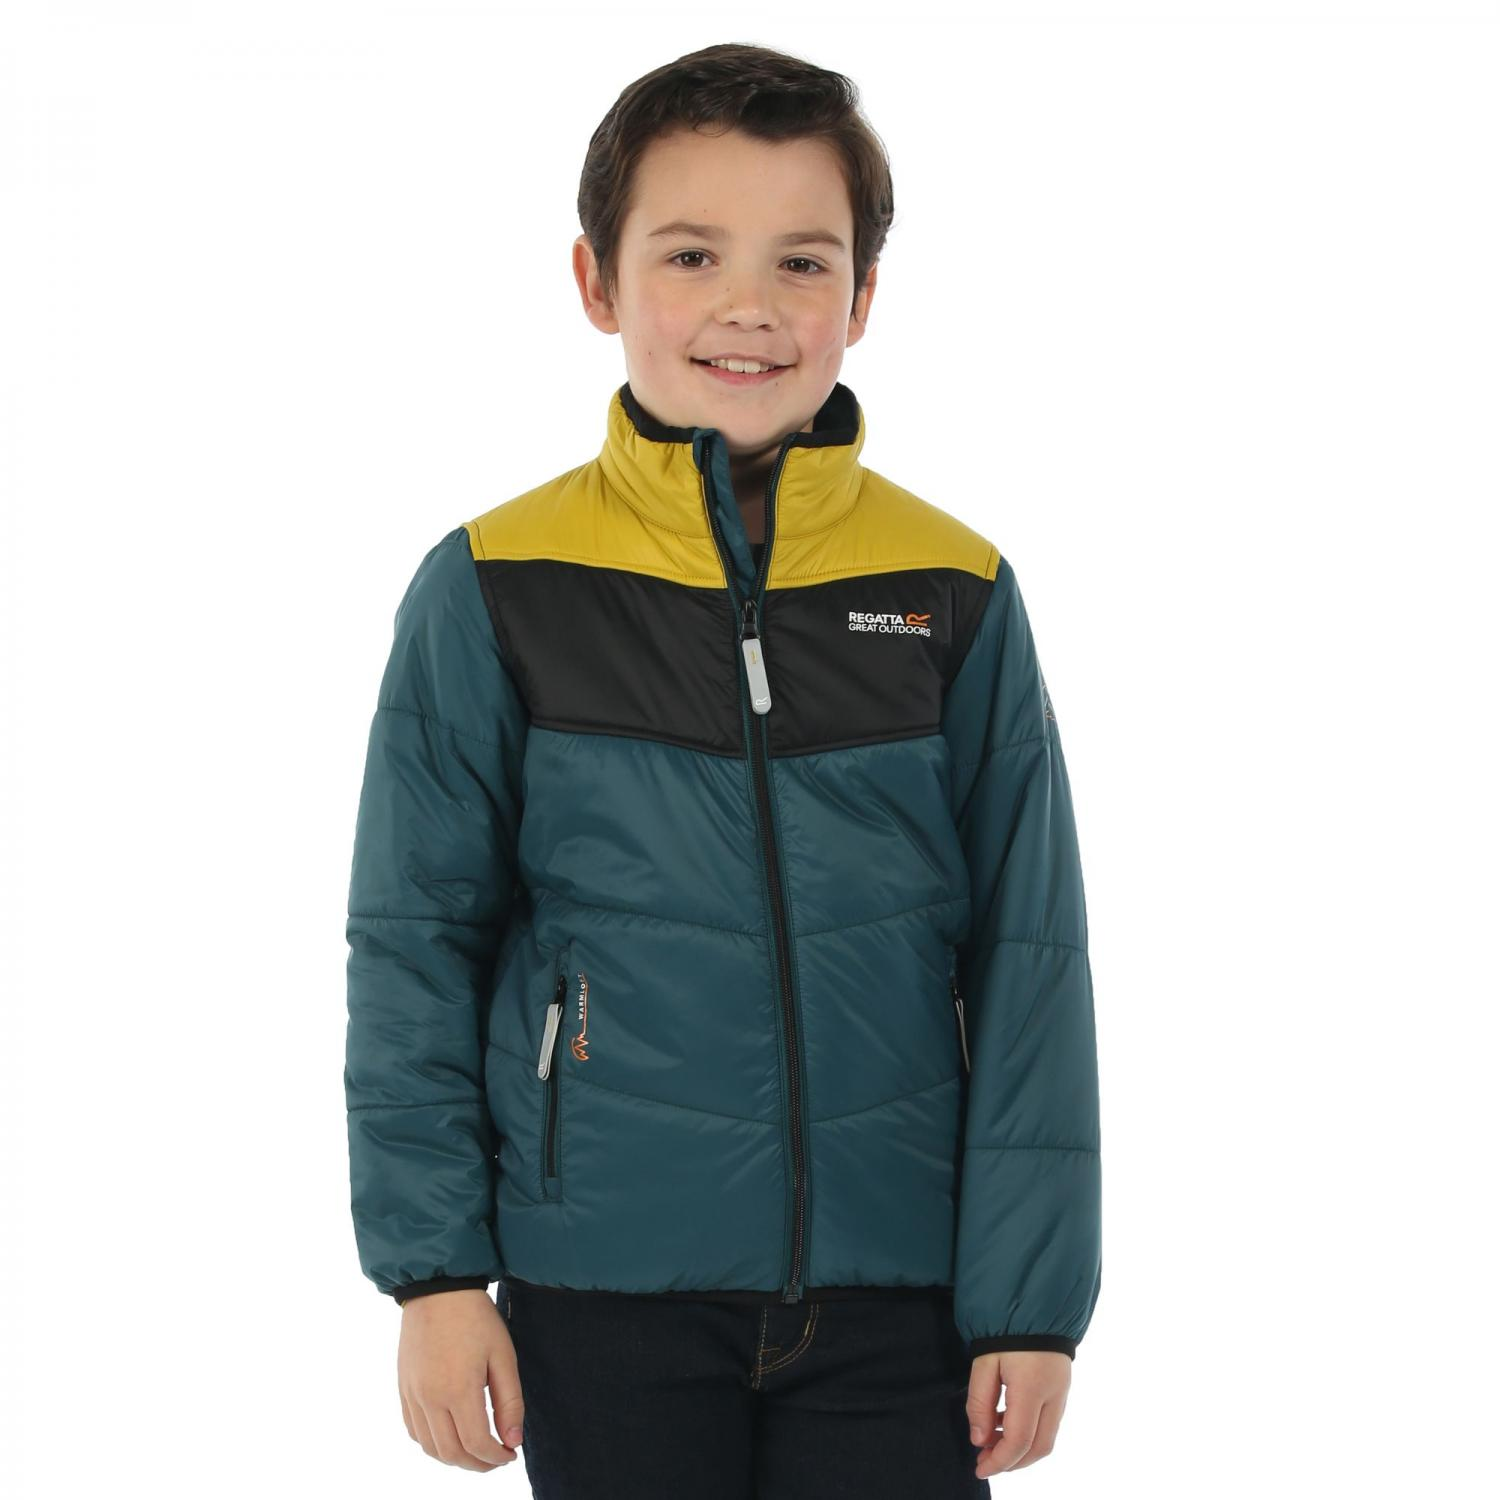 Icebound II Jacket Teal Black Moss